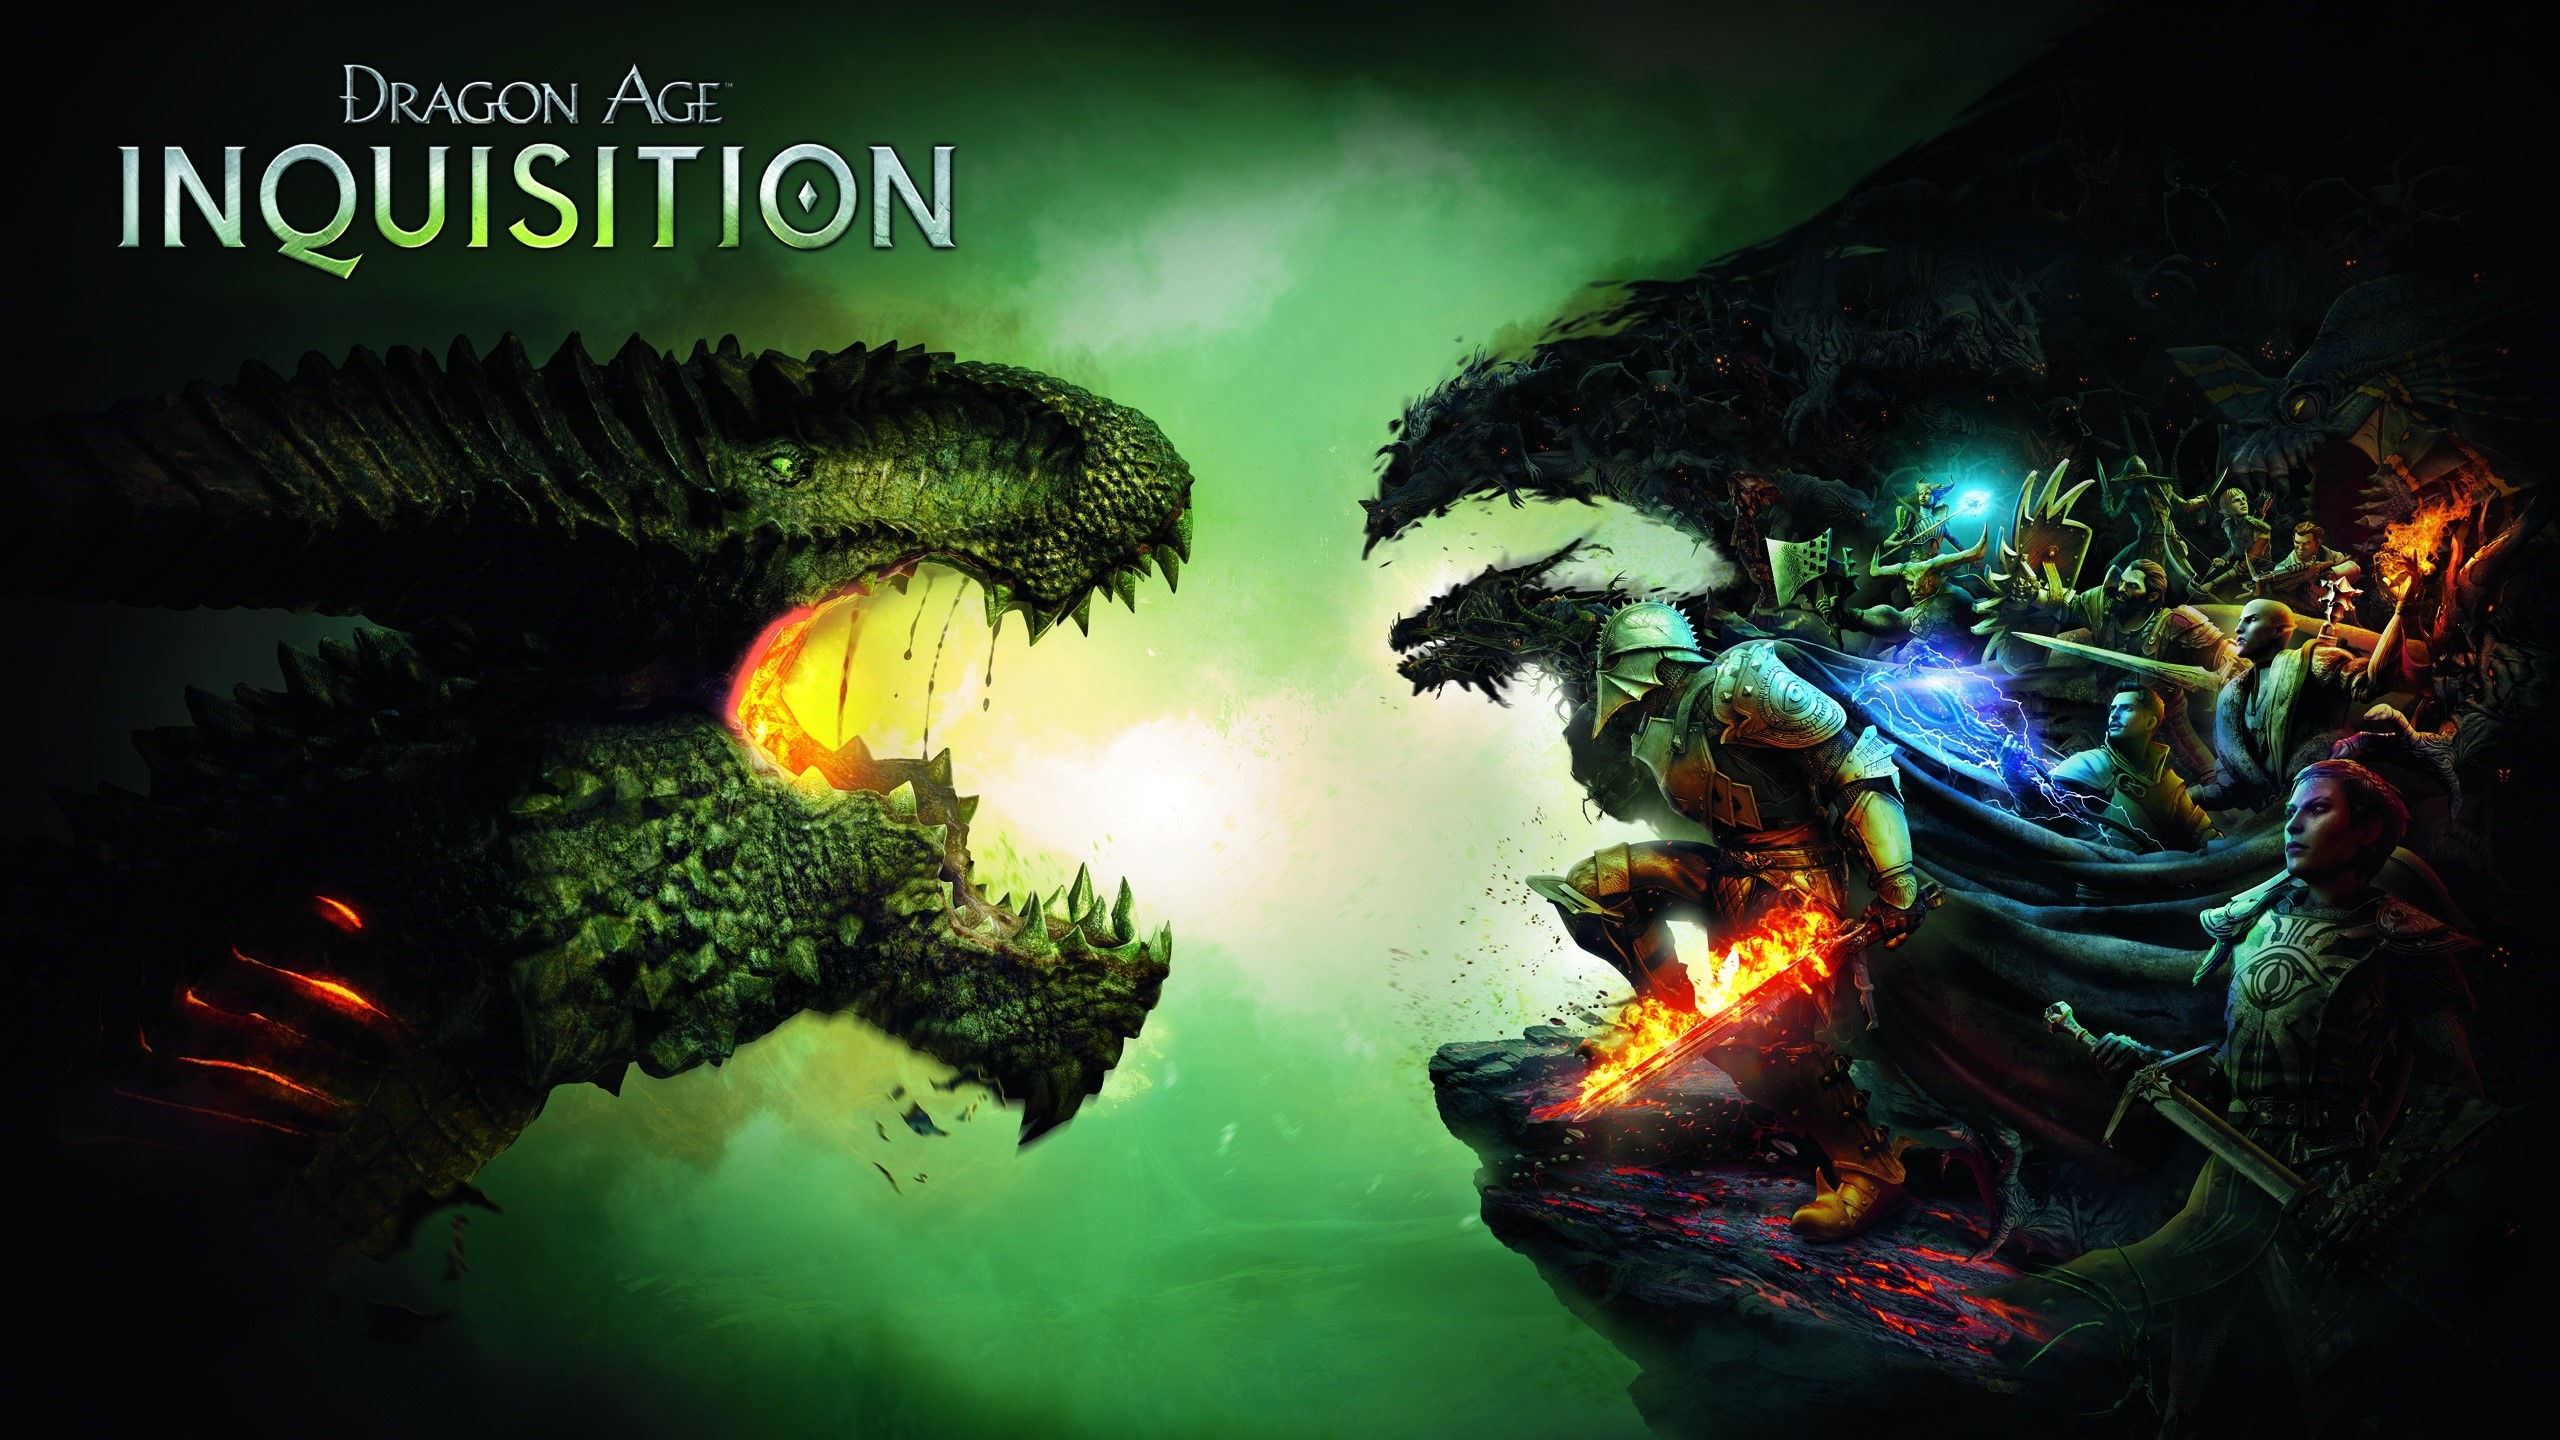 Wallpaper Game Dragon Age Inquisition